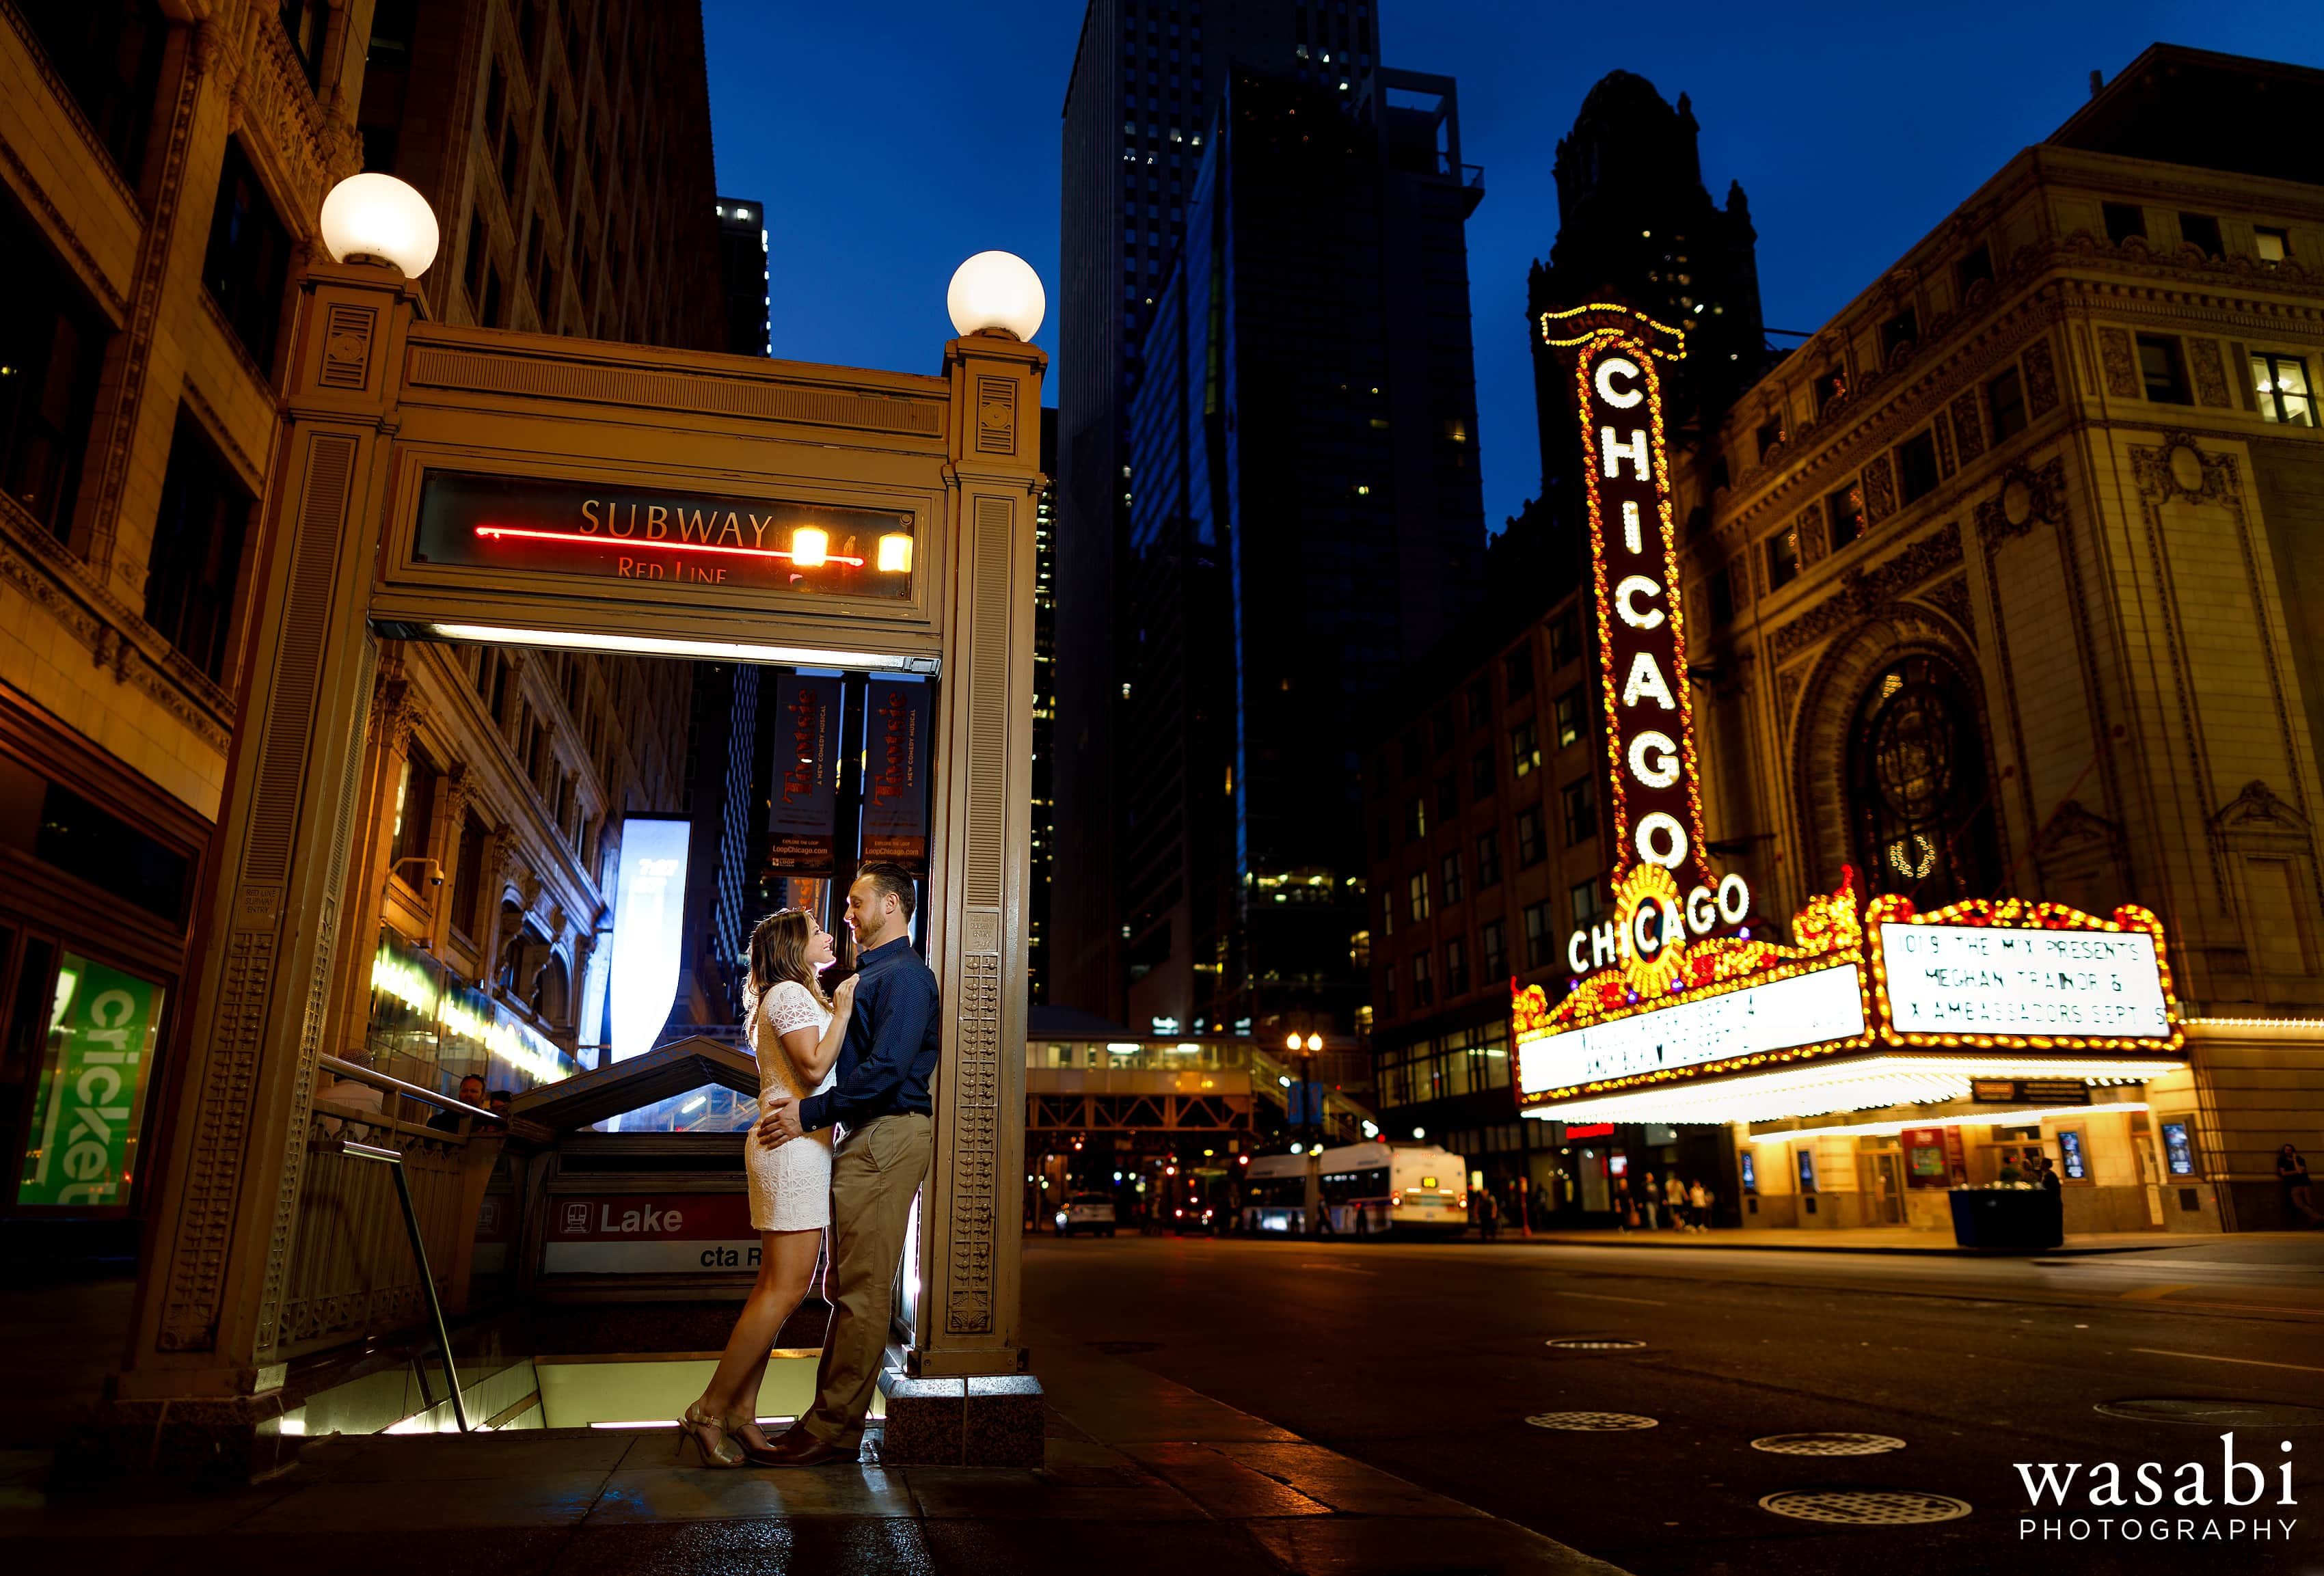 Couple poses under Red Line entrance in front of the iconic Chicago Theatre sign on State Street in Chicago